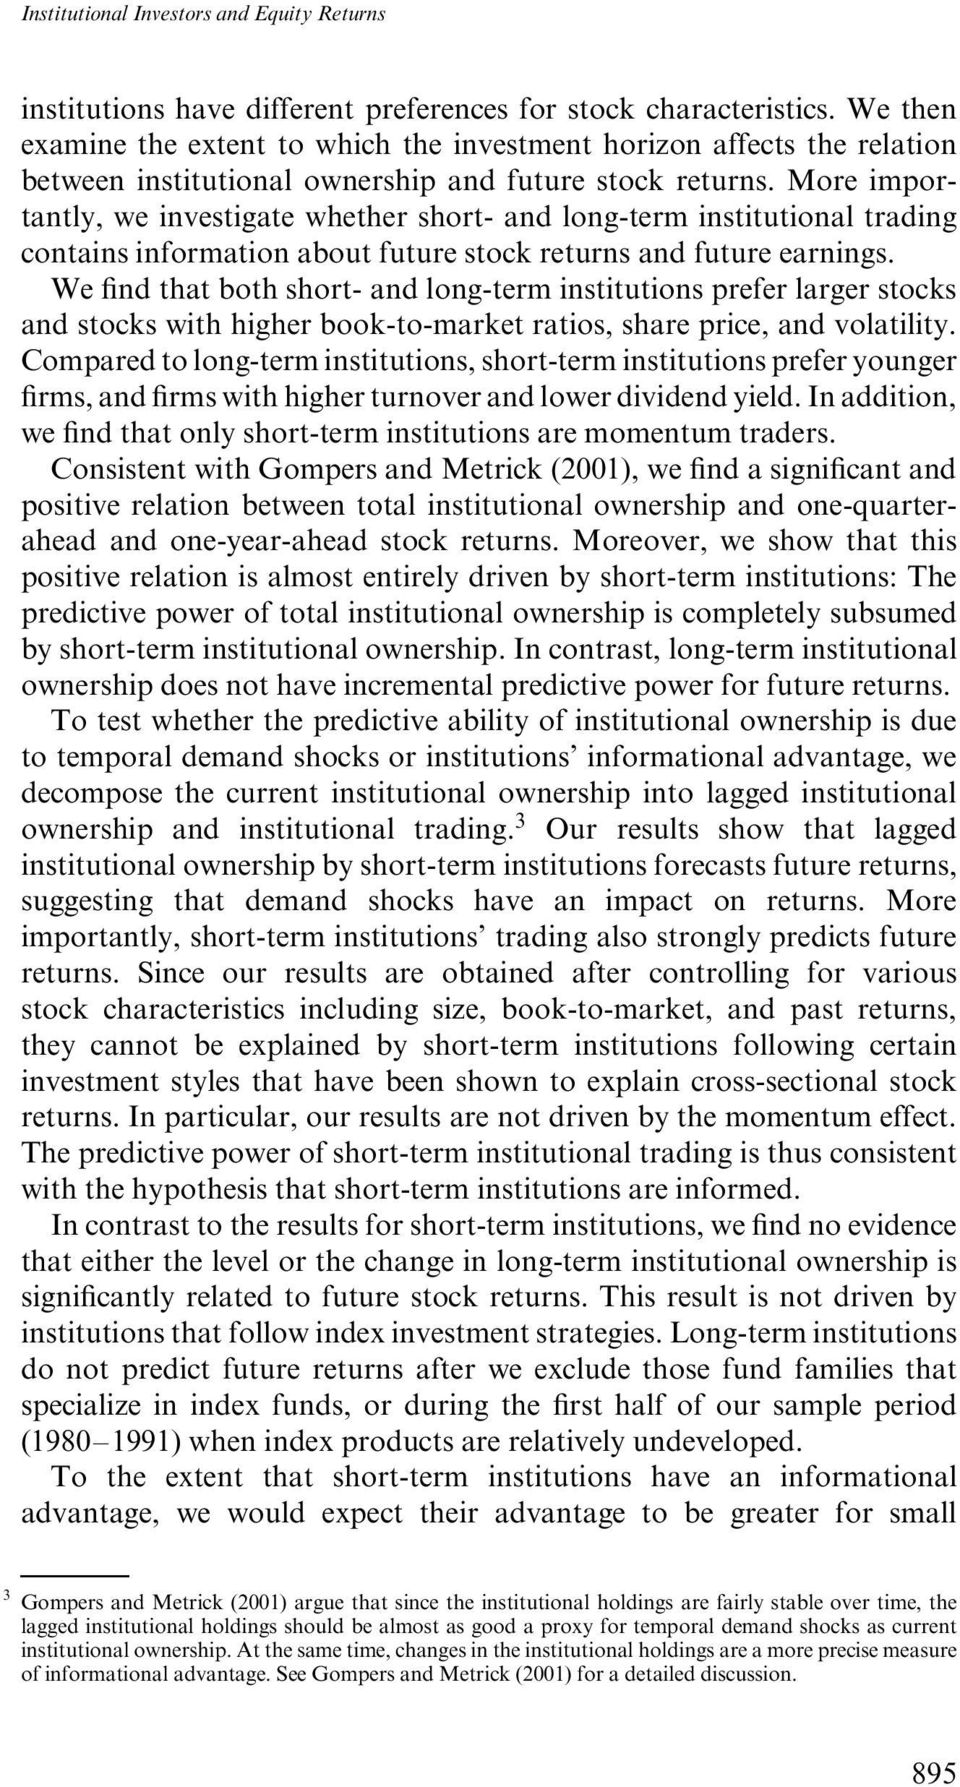 More importantly, we investigate whether short- and long-term institutional trading contains information about future stock returns and future earnings.